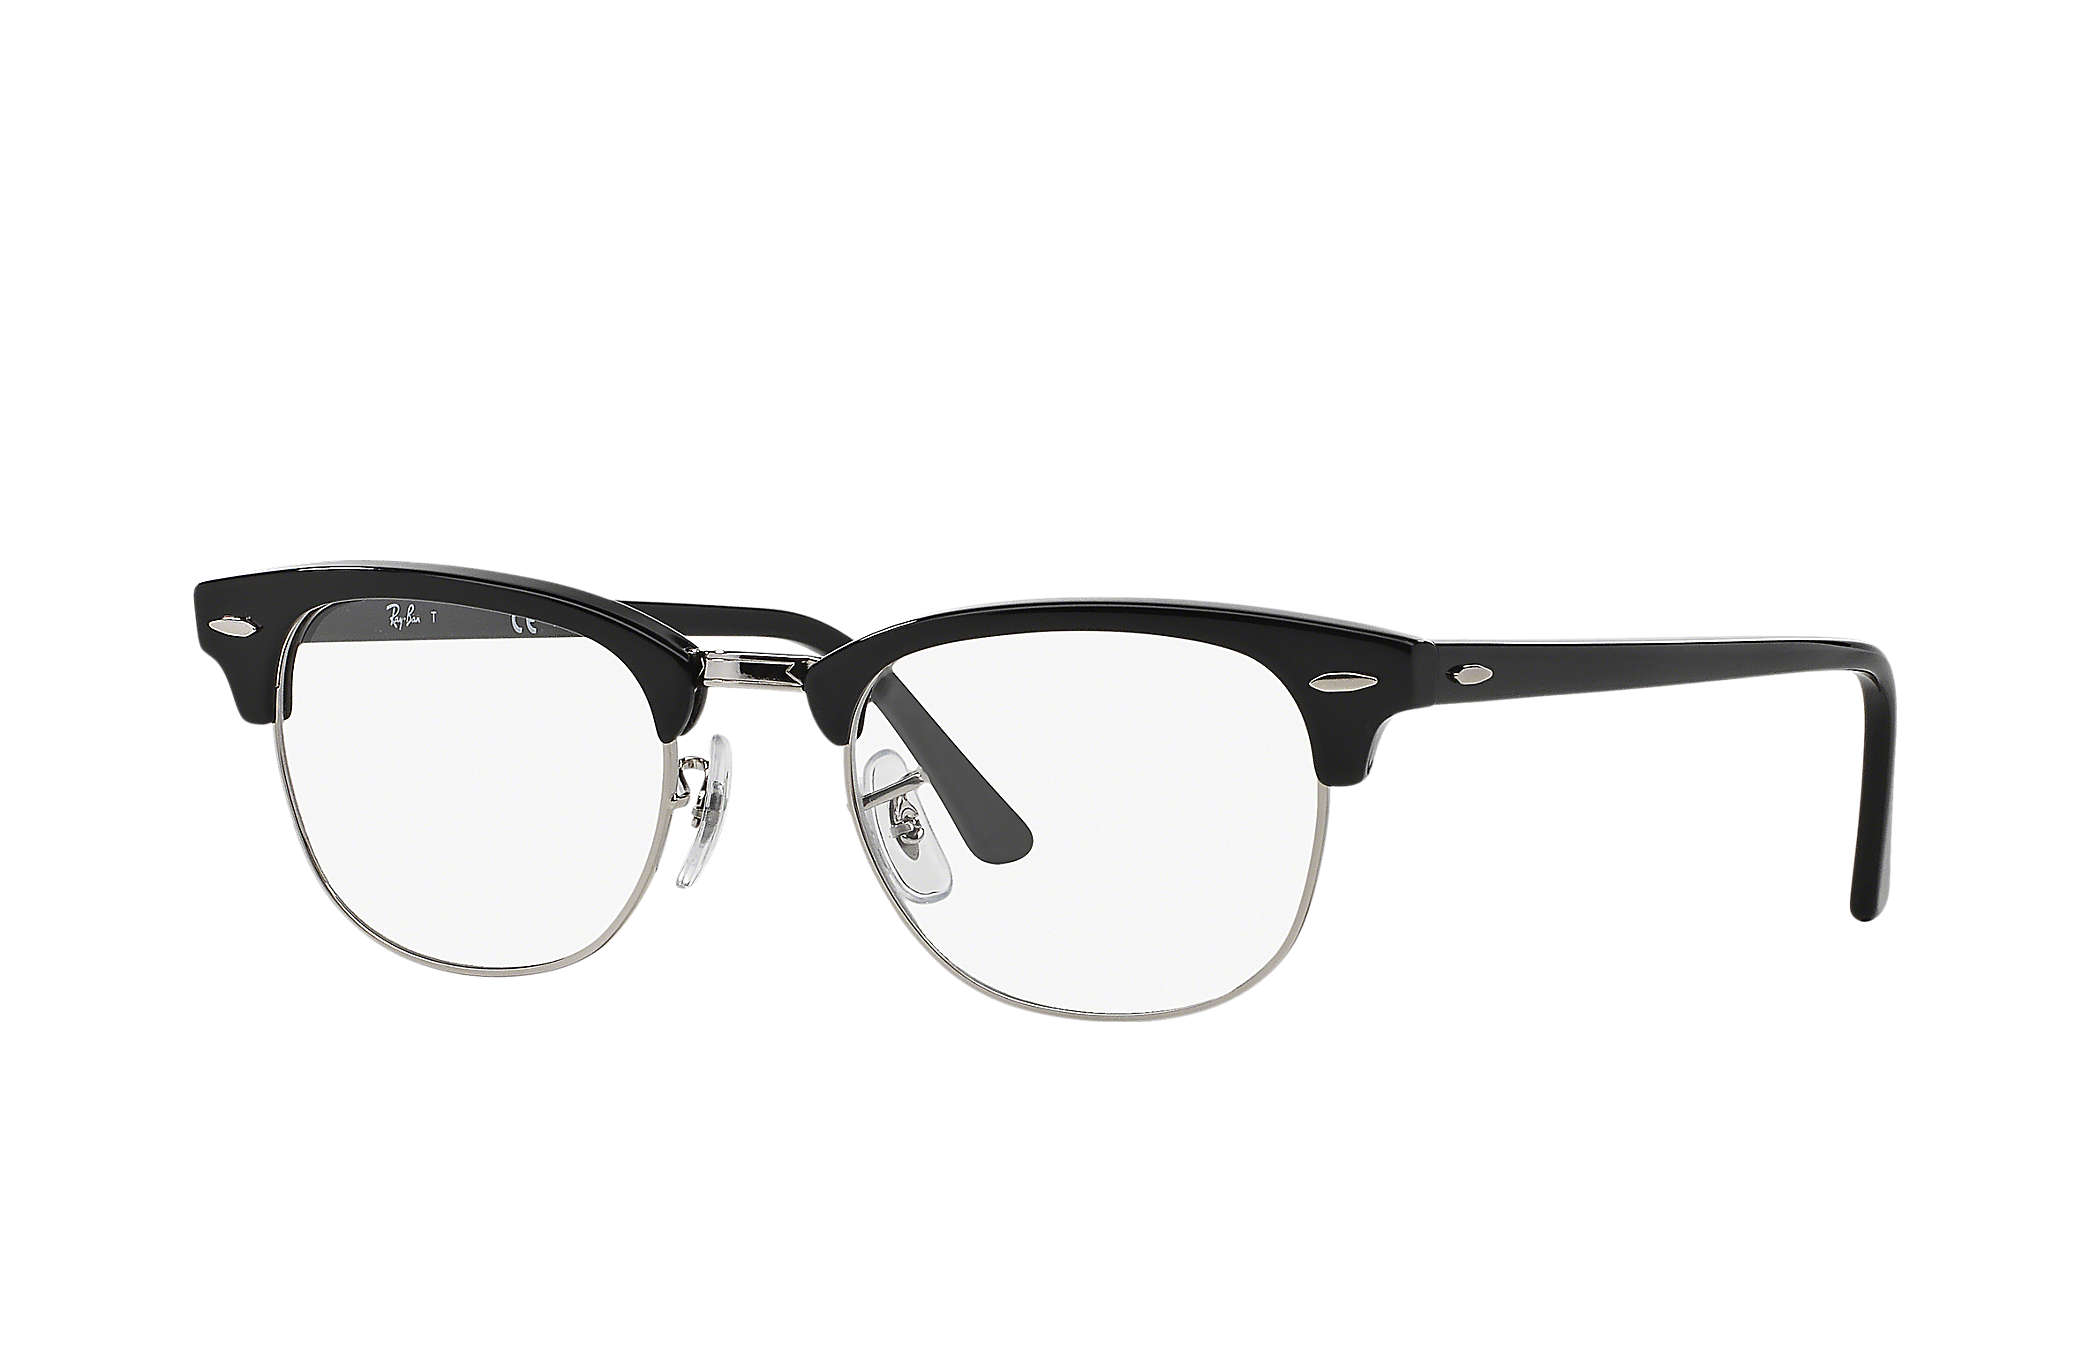 Ray Ban The Clubmaster Optics RB5184 - Denmead Eyecare 295ff5f75e